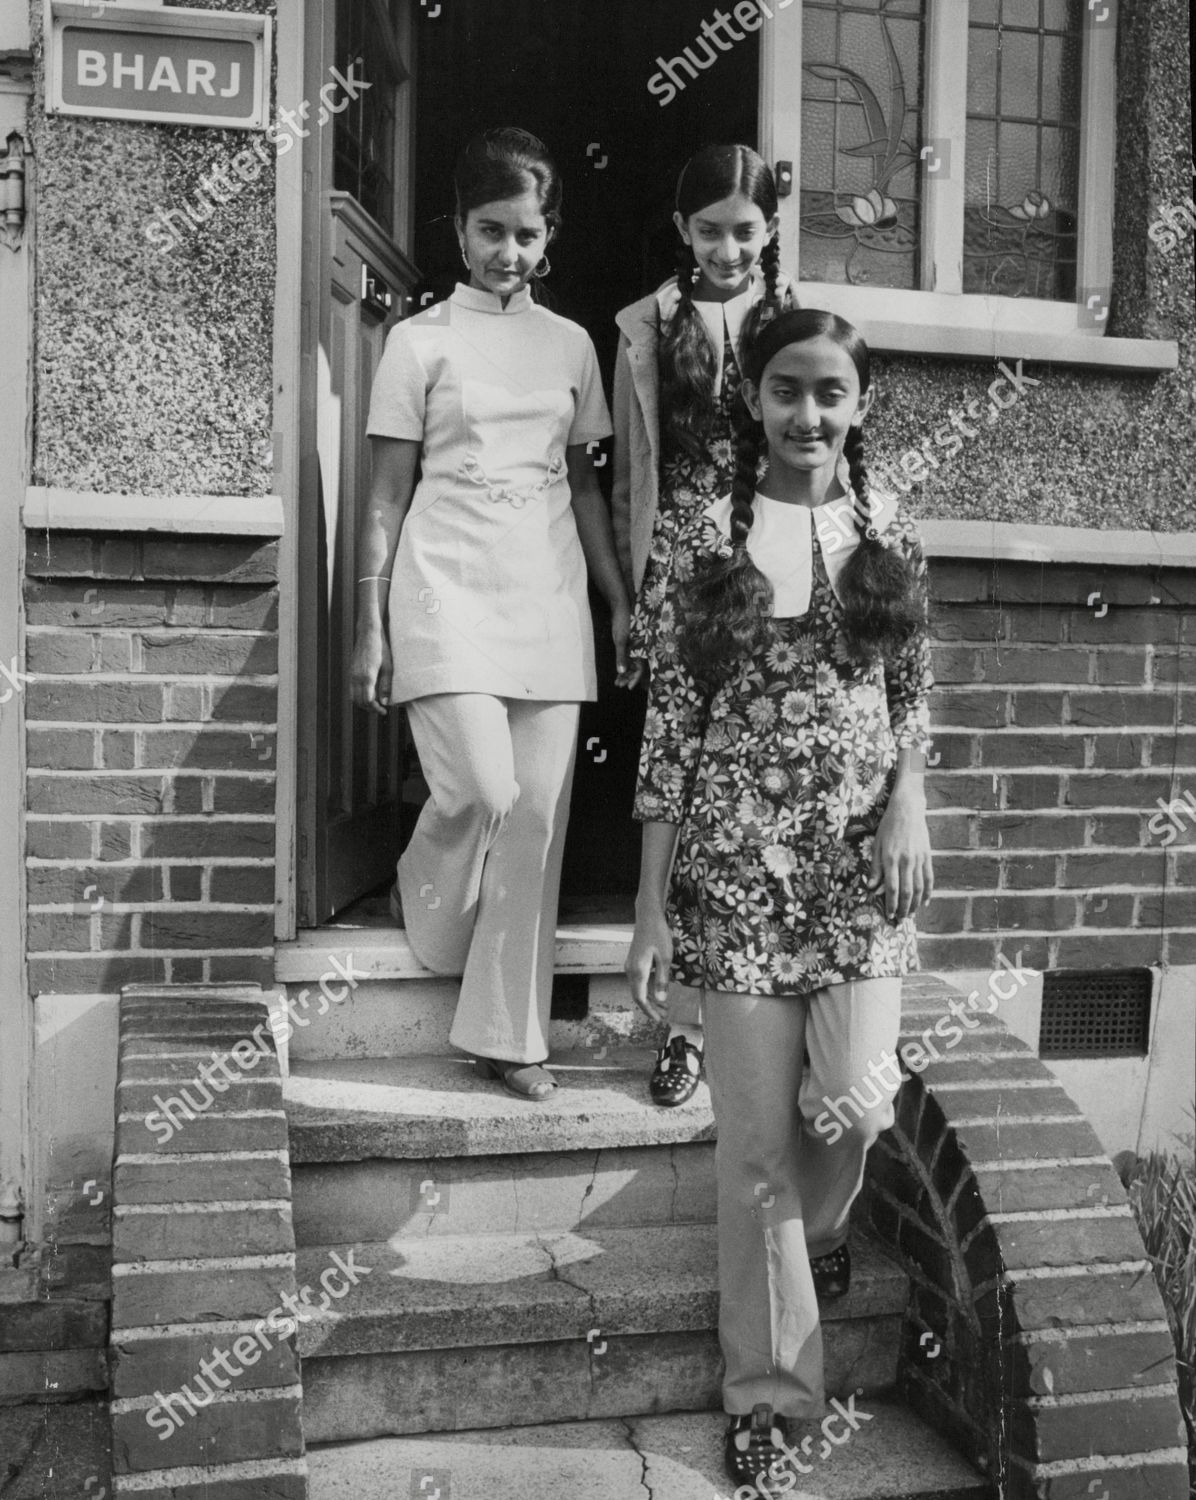 Stock photo of Asians Expelled From Uganda By President Idi Amin. Mrs Terchan Chana (l) And Daughters Inder 12 And Kaman 15 At Her Sister's Home In Harrow London. Box 745 207041737 A.jpg.